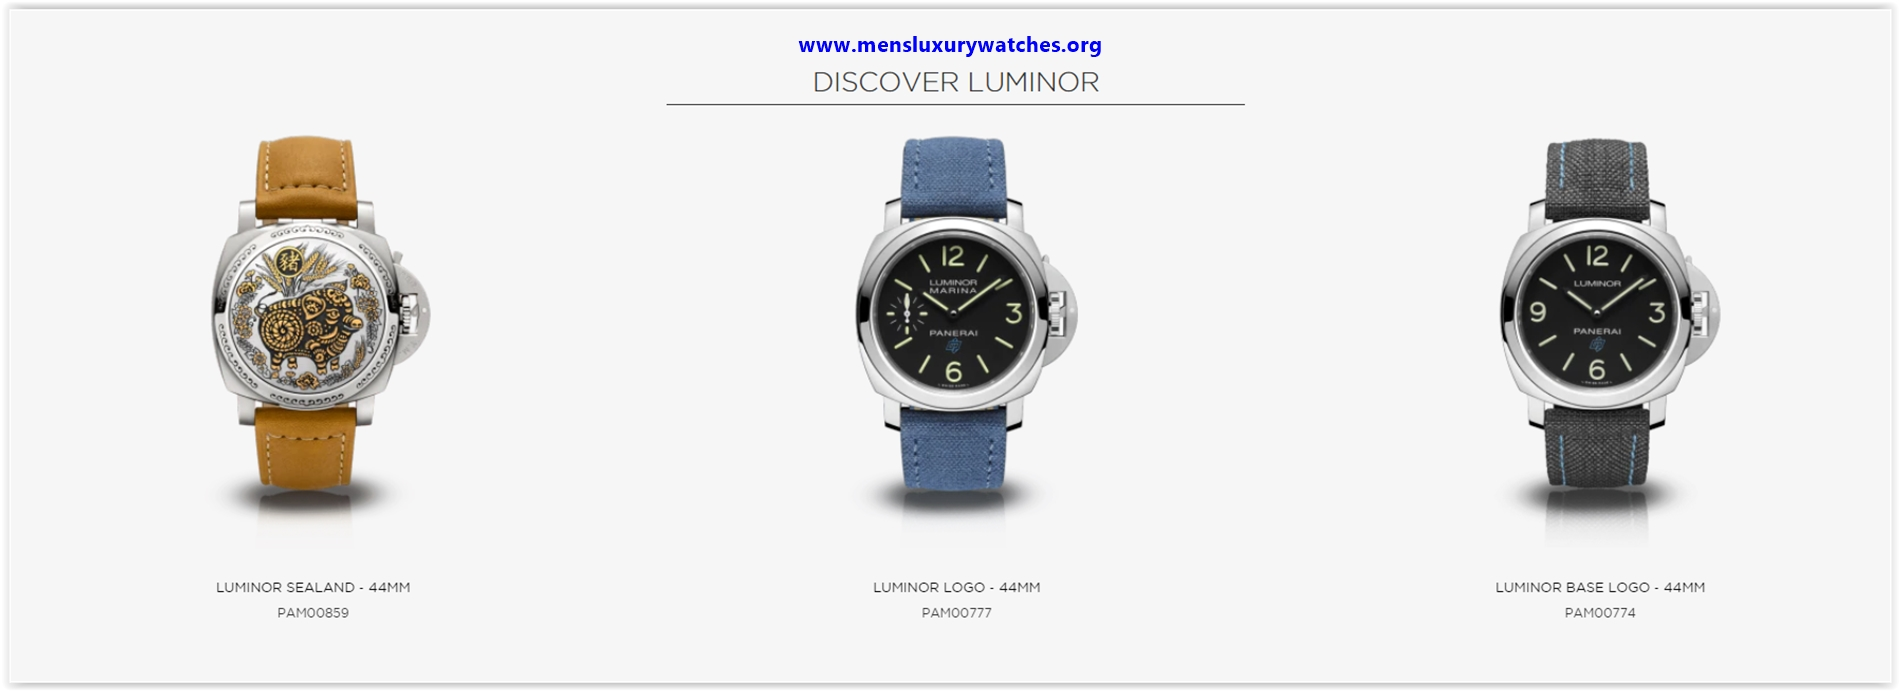 2020 series Panerai watches preferred by strong men in the United States